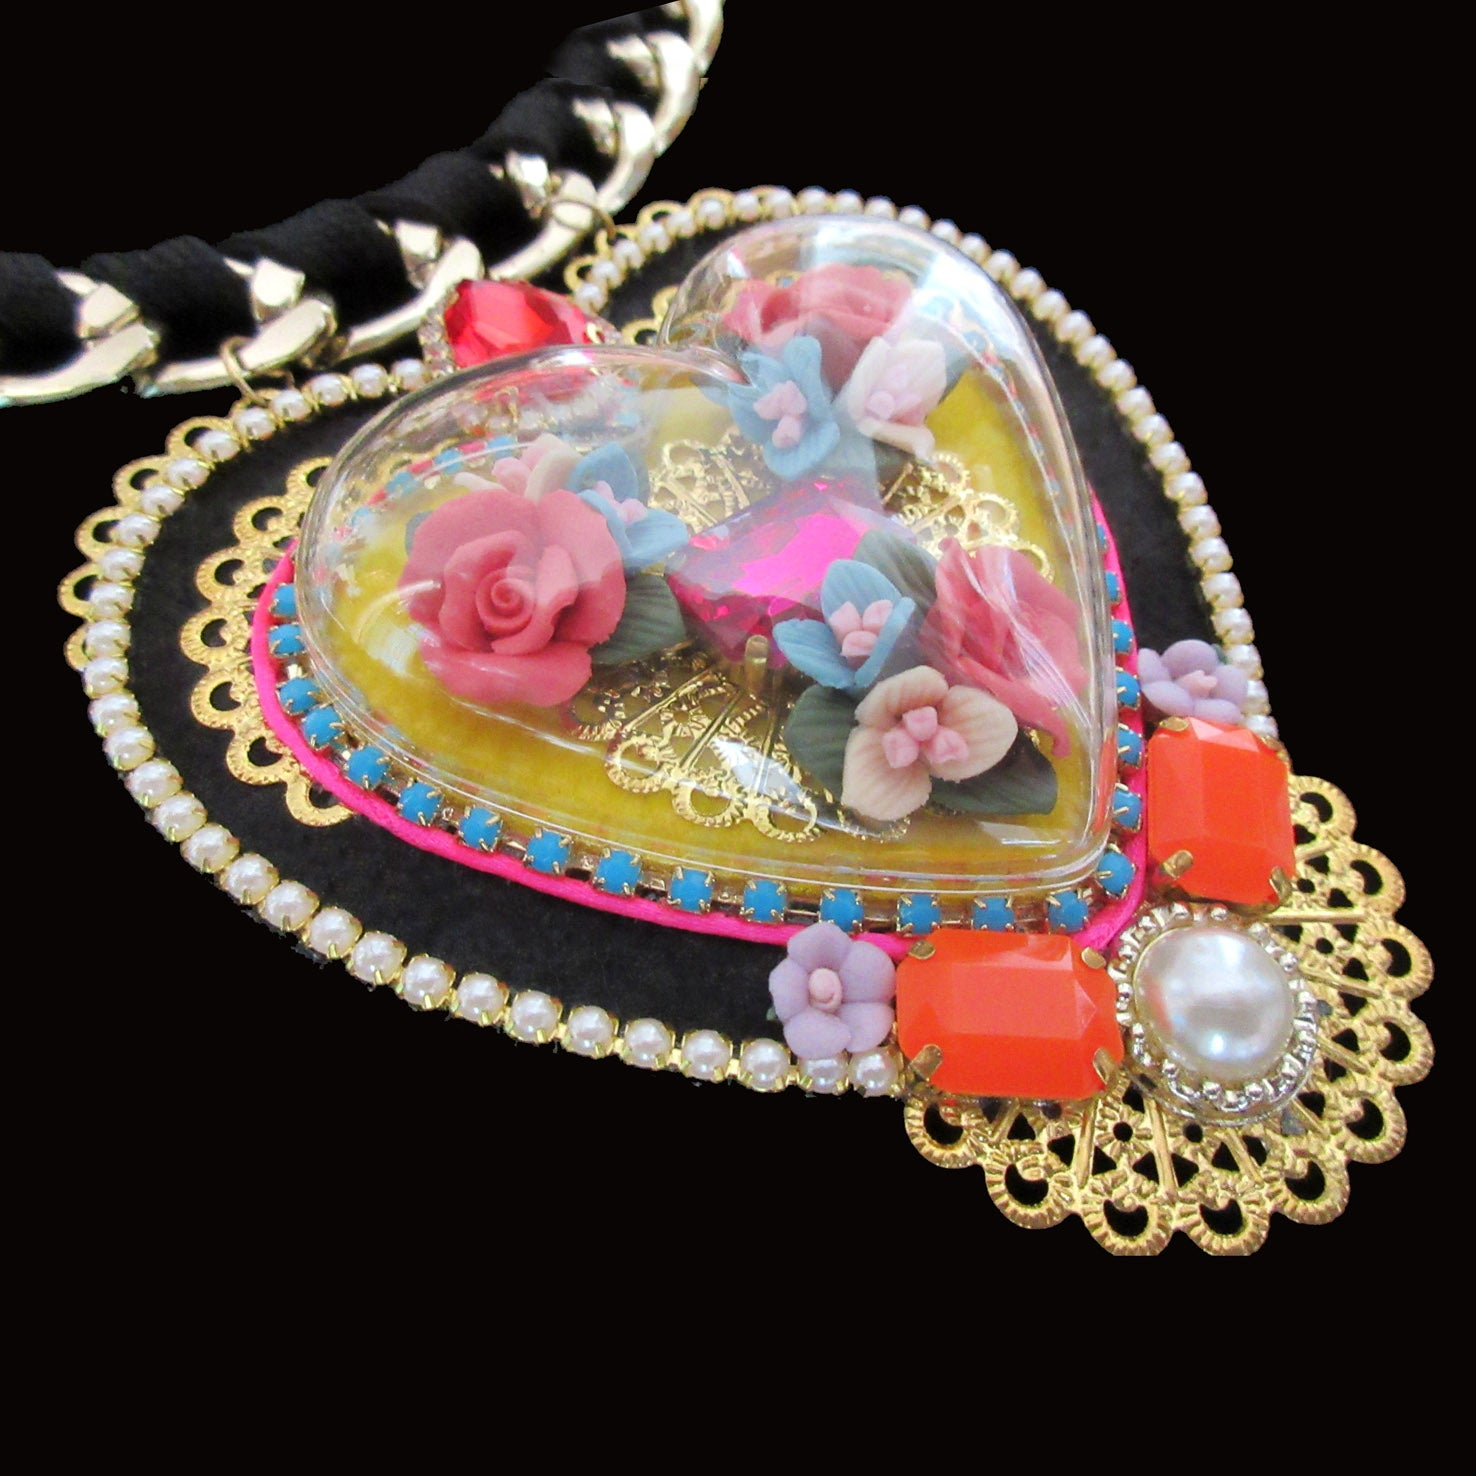 mouchkine jewelry chic and trendy handmade necklace with a heart shape